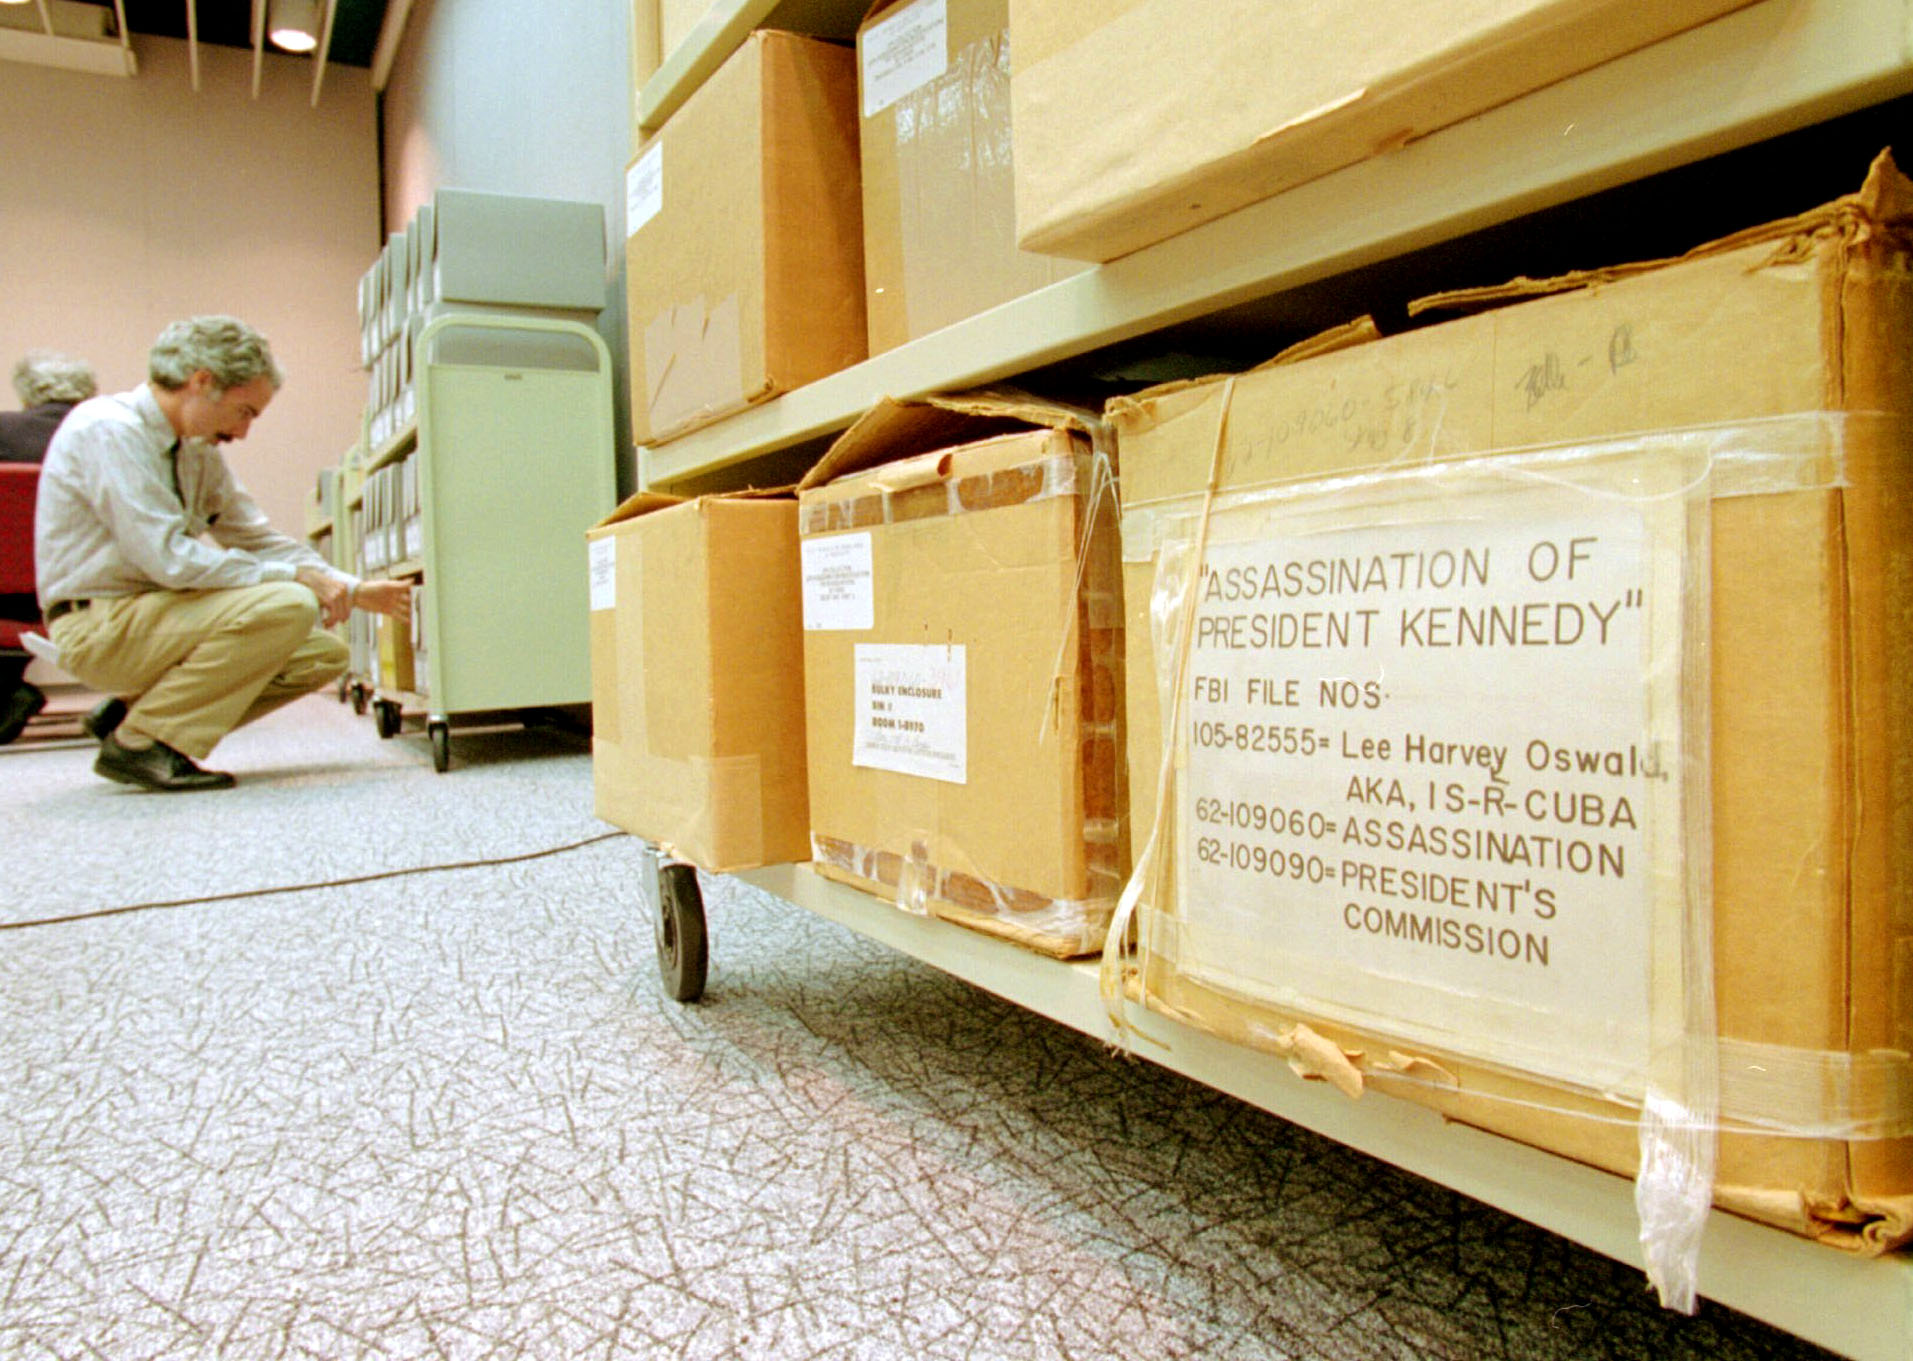 Archivist Ken Hawkins looked over files concerning the assassination of President John F. Kennedy in May 1994 at the National Archives in College Park Md